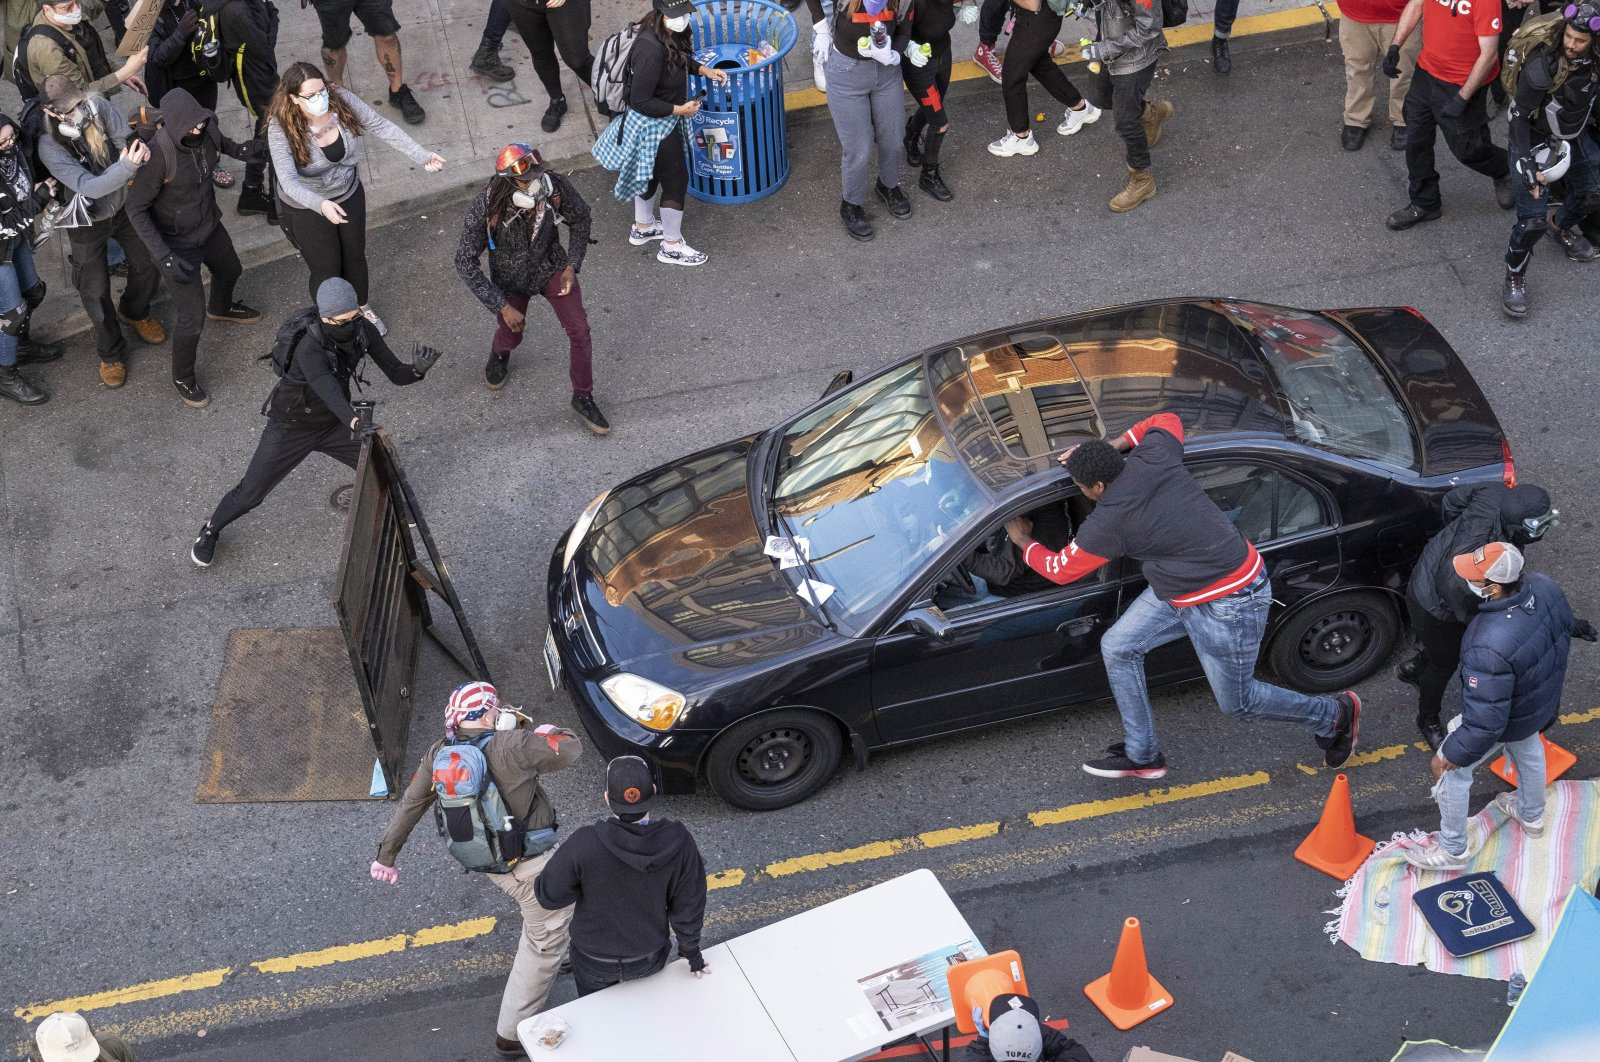 A man drives into the crowd at 11th and Pike, injuring at least one person, Seattle, June 7, 2020. (AP Photo)